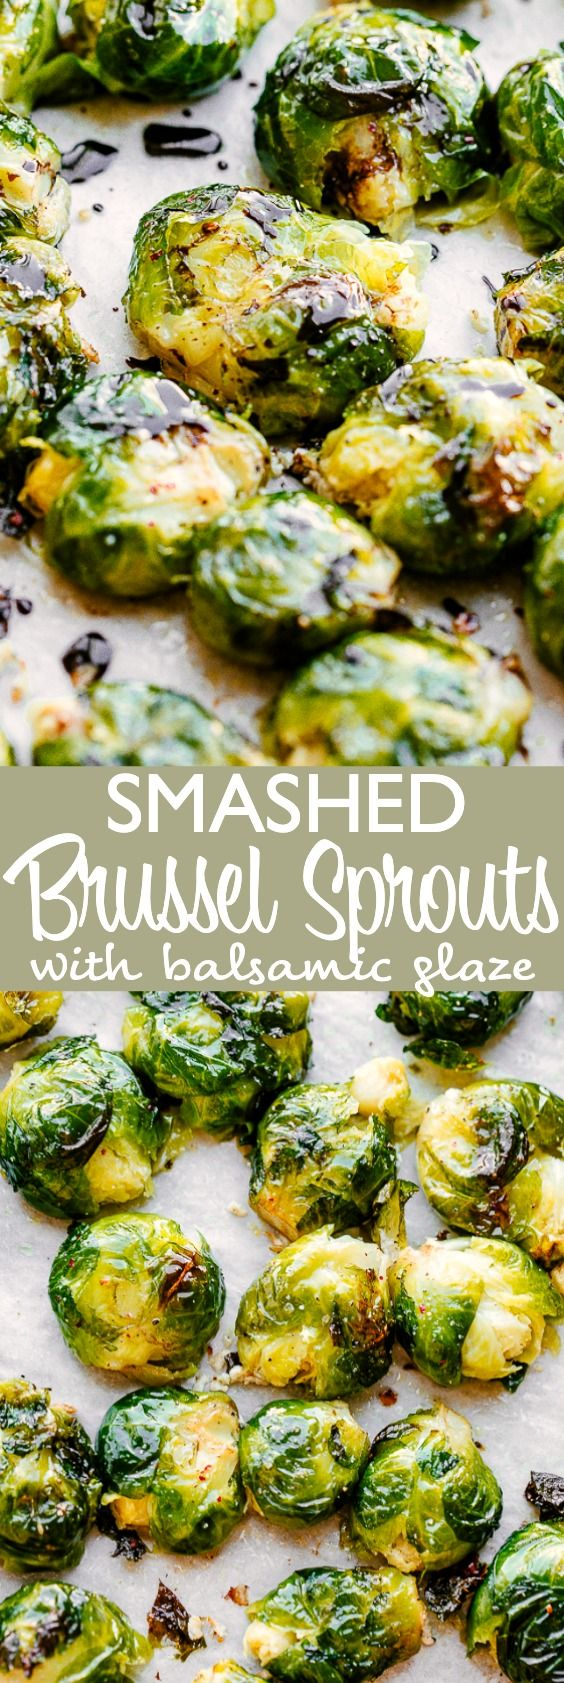 Smashed Brussel Sprouts with Balsamic Glaze - Crunchy, sweet, and delicious Brussel Sprouts drizzled with a flavorful Balsamic glaze! This recipe for crispy Smashed Brussel Sprouts is the perfect addition to your table for a festive dinner. #brusselsprouts #sidedish #thanksgiving